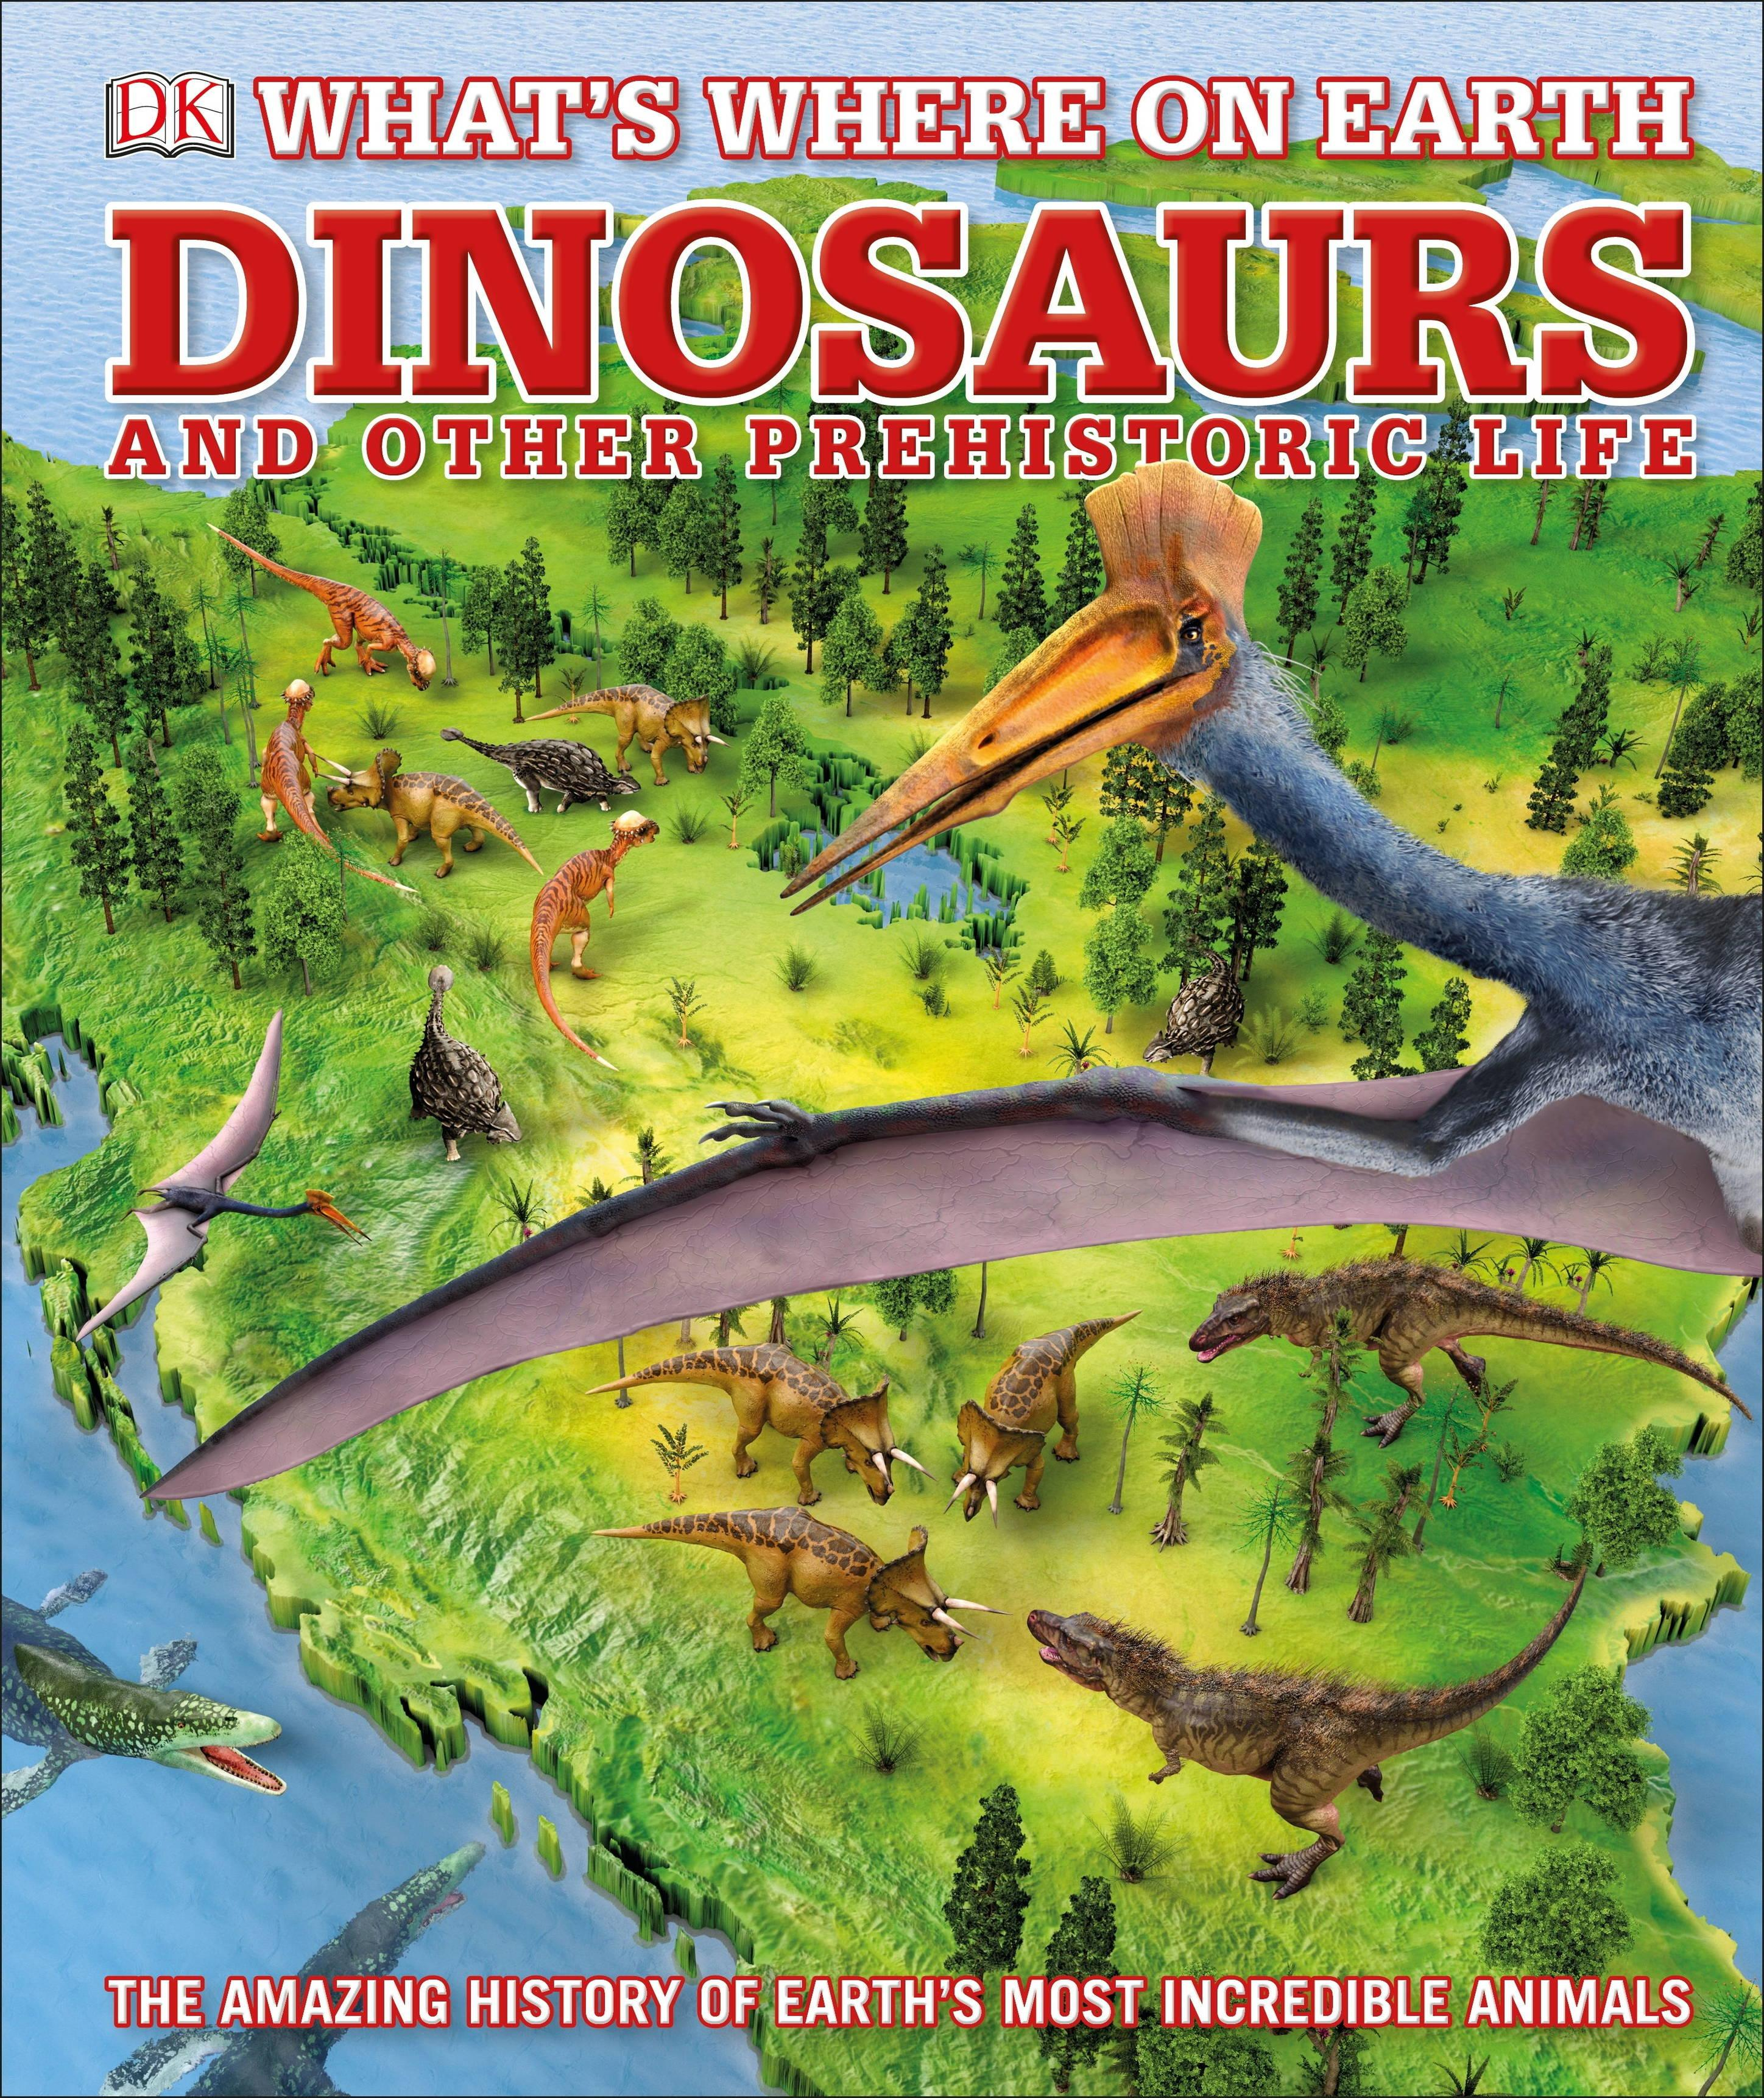 Whats Where on Earth Dinosaurs and Other Prehistoric Life by DK